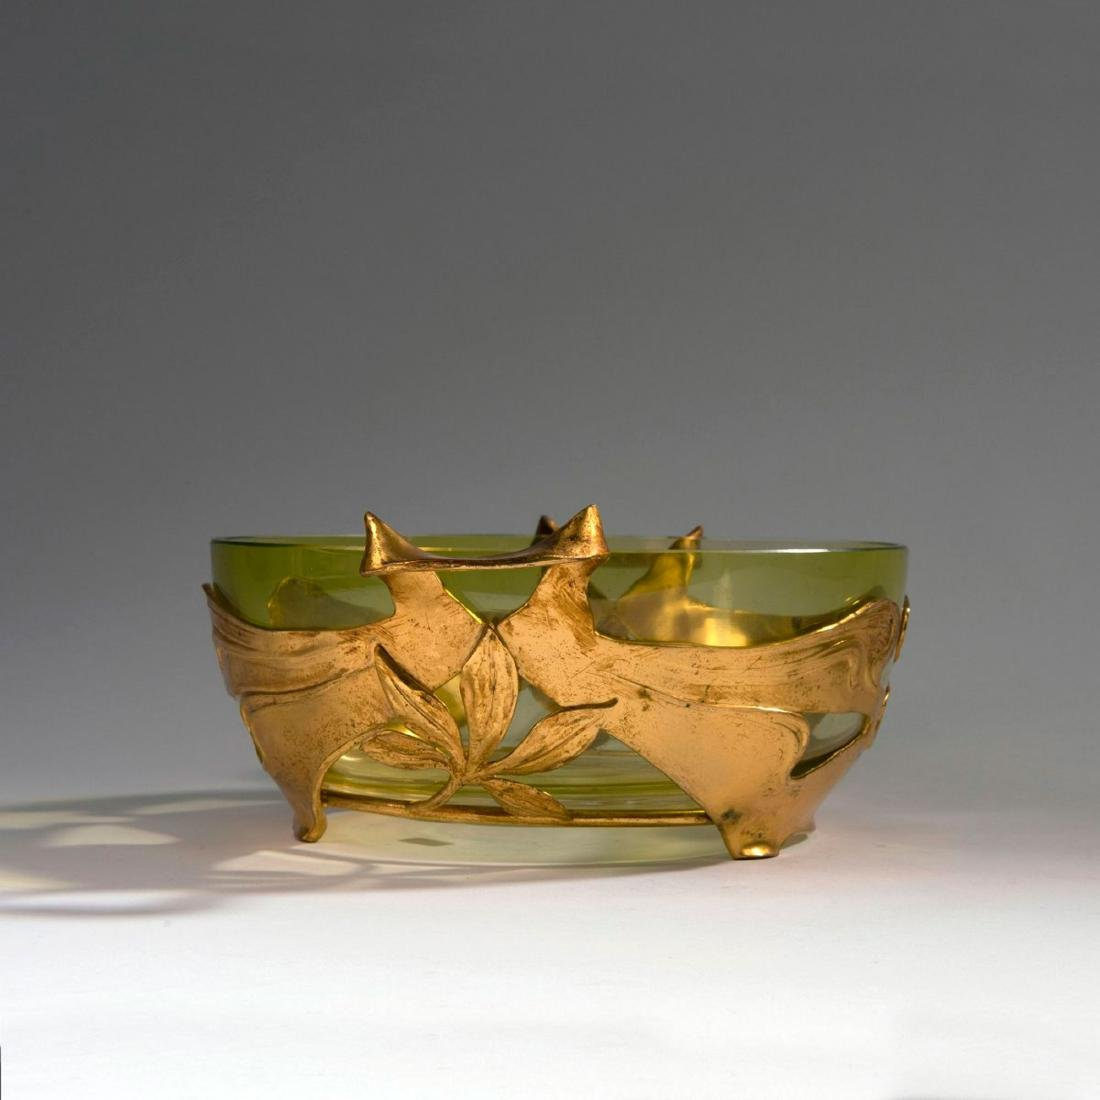 'Chestnut' bowl with two handles, c. 1900 - 3